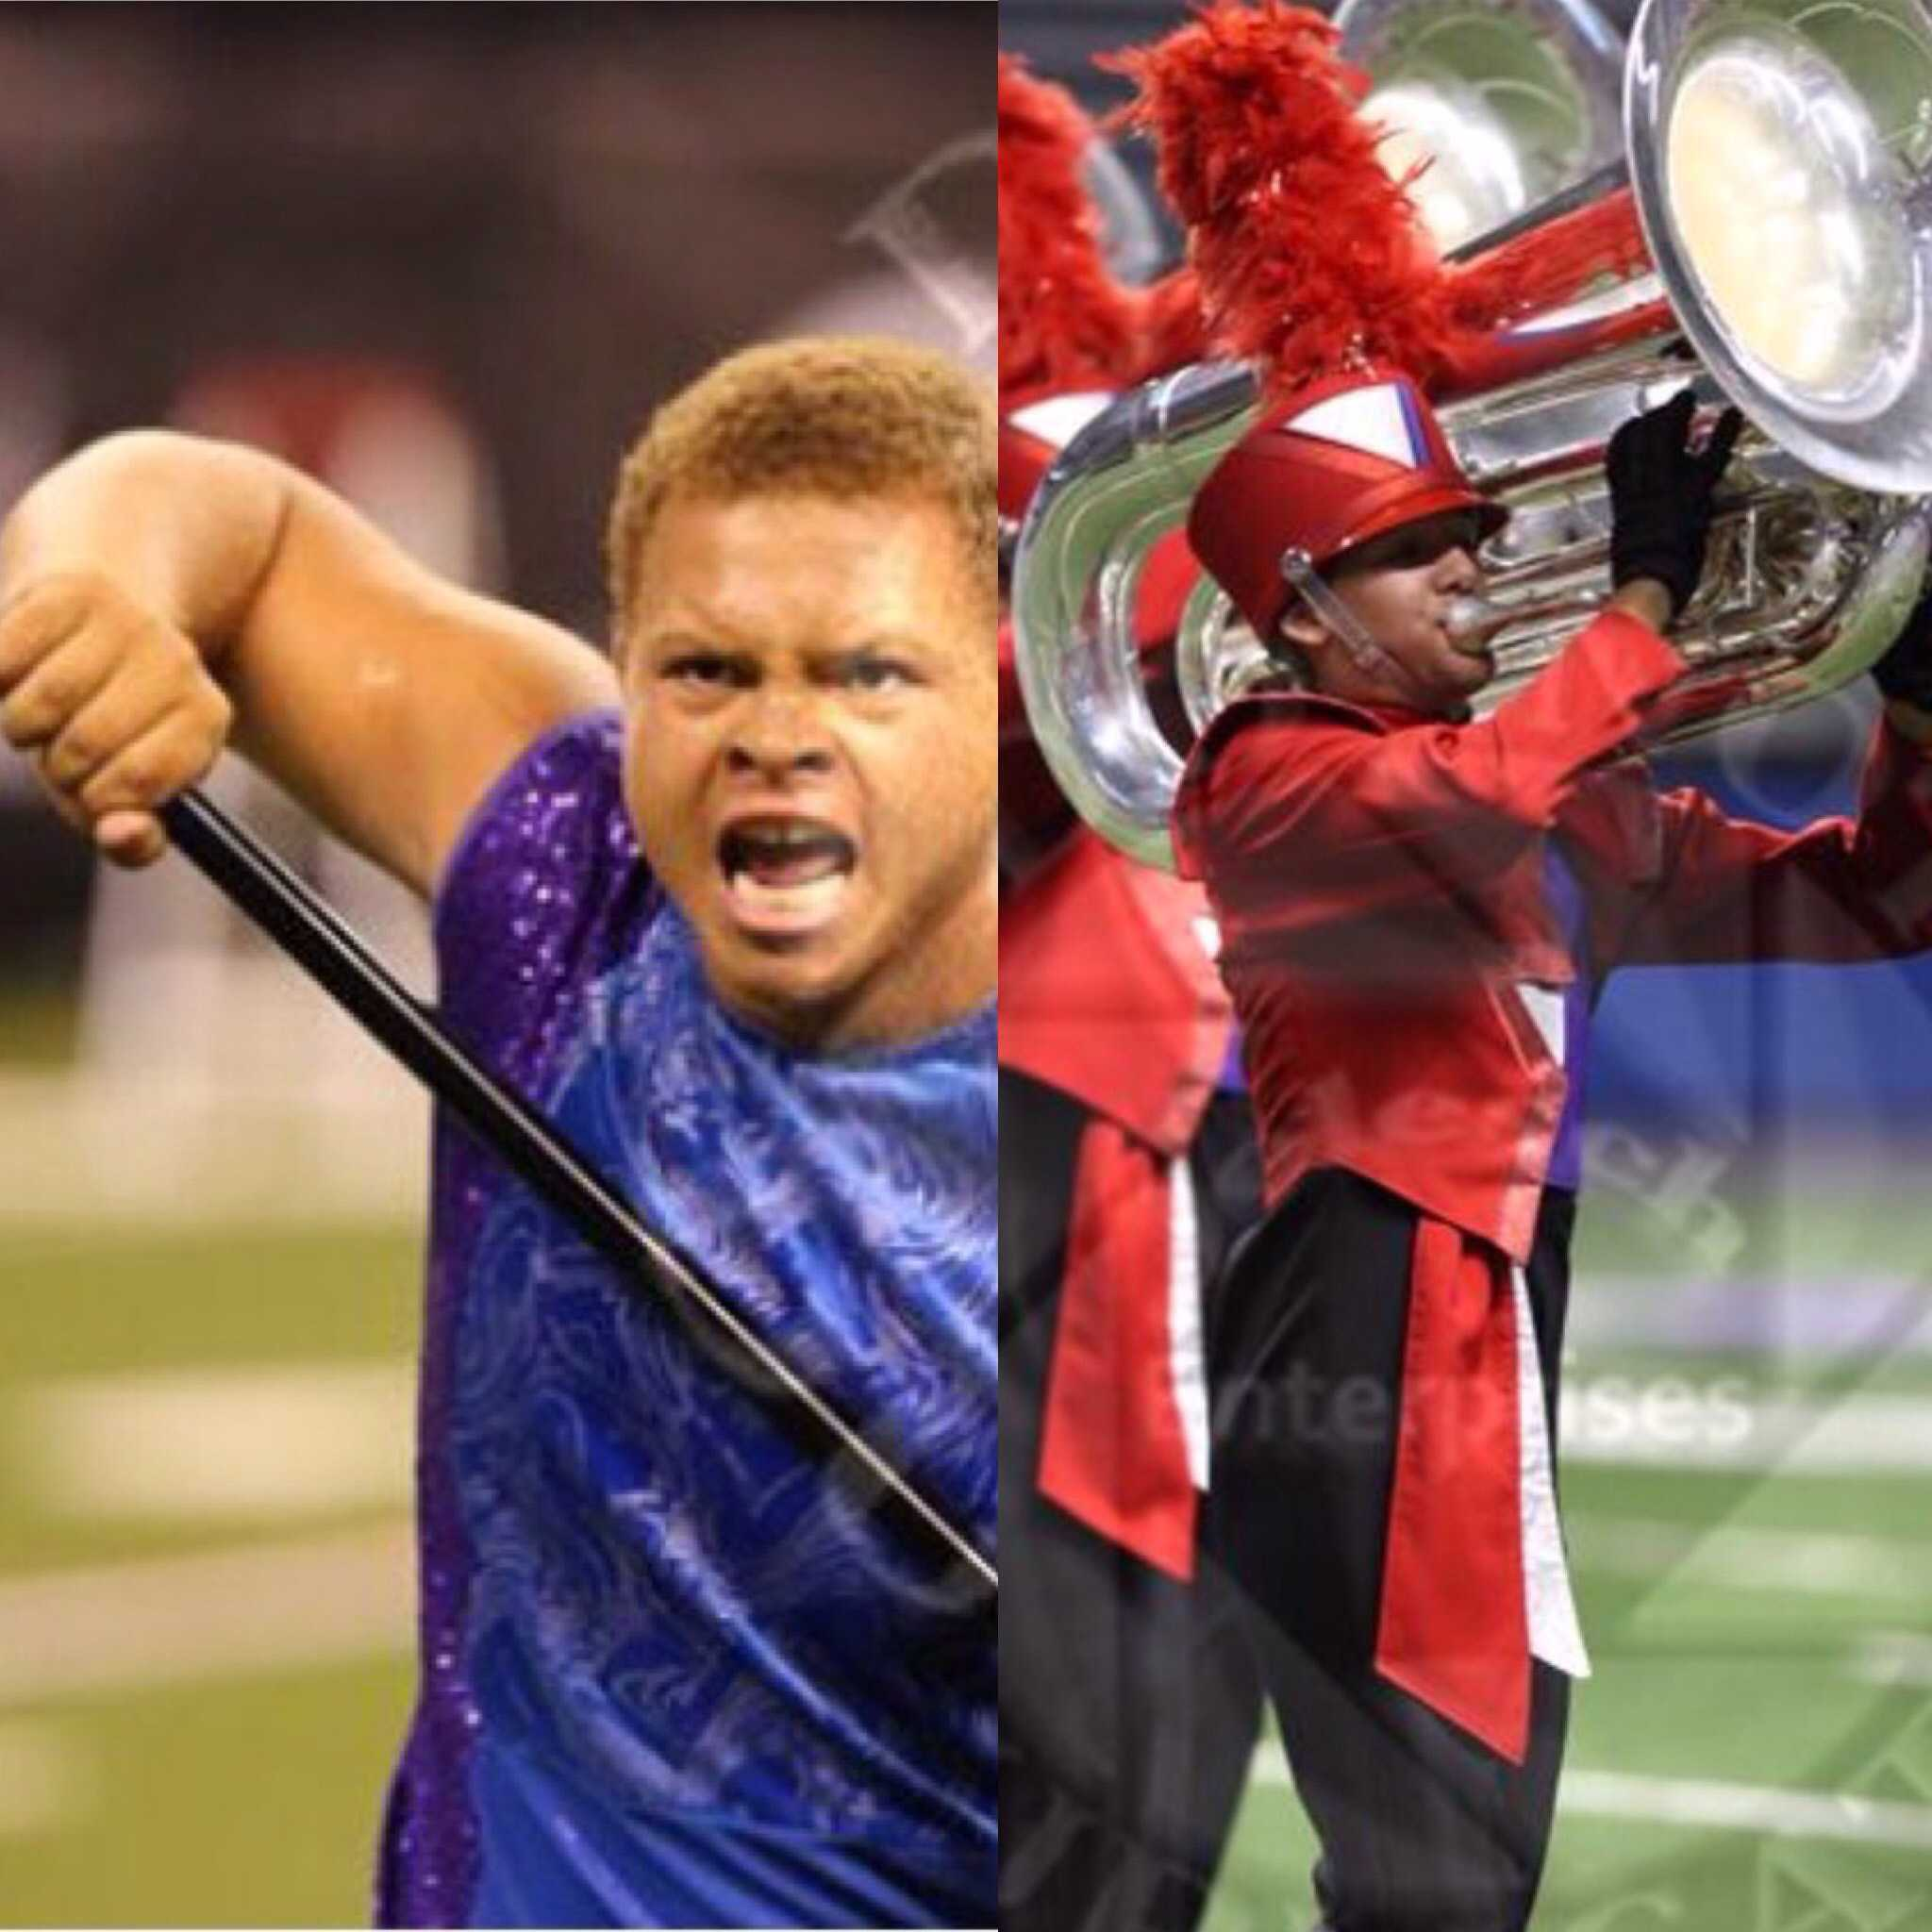 Chase Courtier and Kaimen Swanton perform with the drum corps.